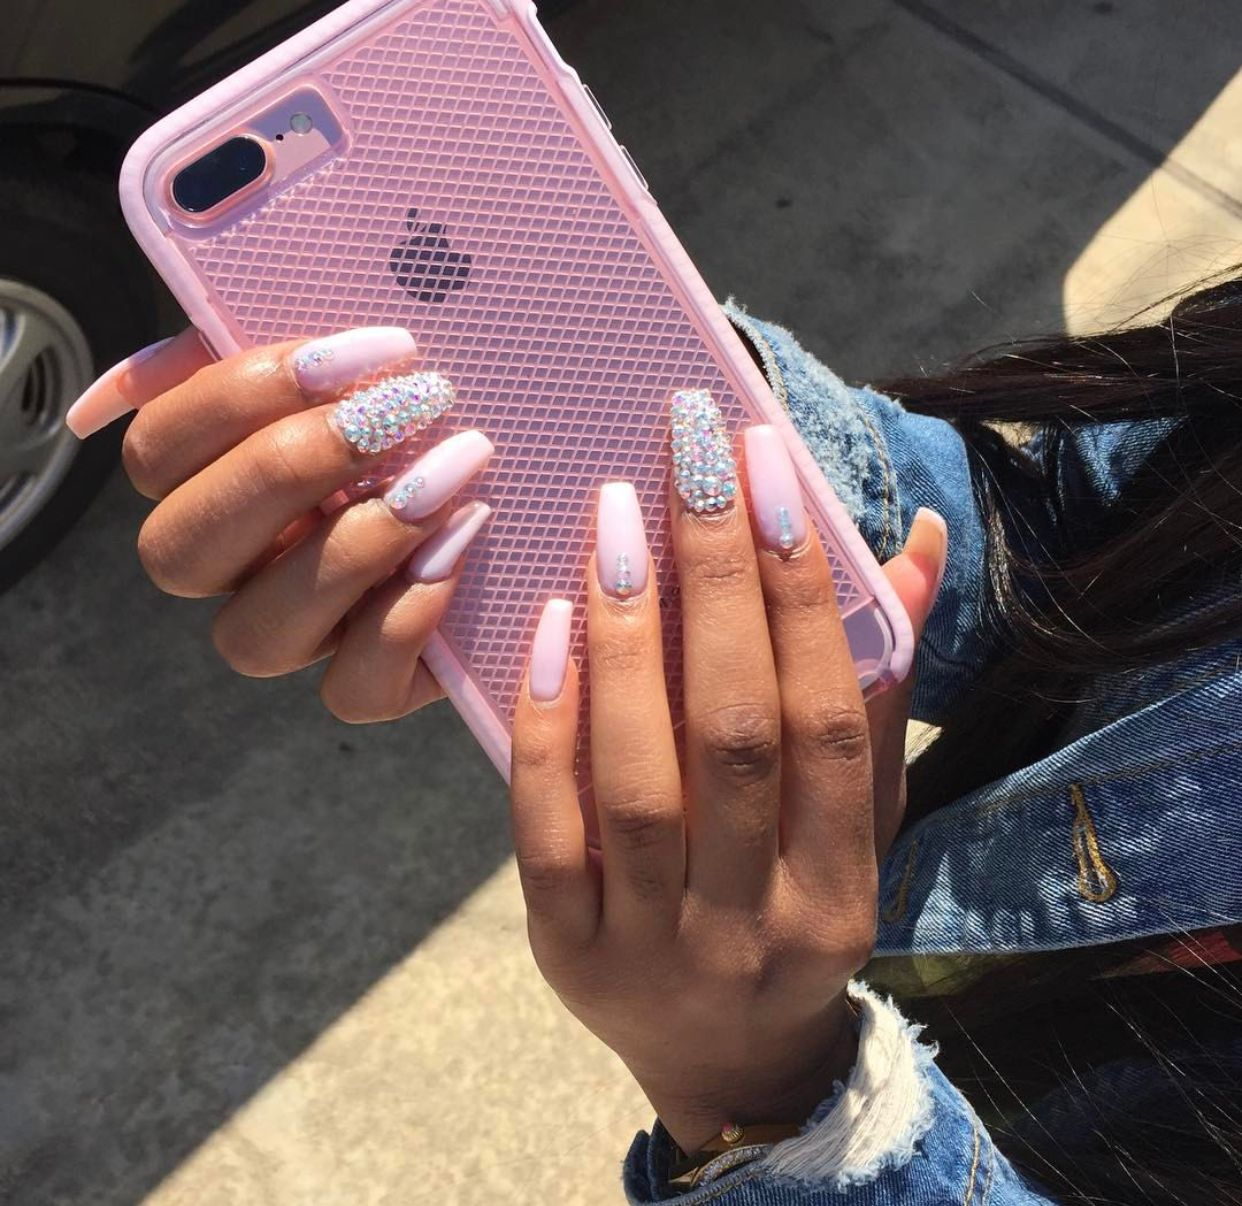 shesoglorious | NAILS | Pinterest | Snapchat, Instagram and Phone